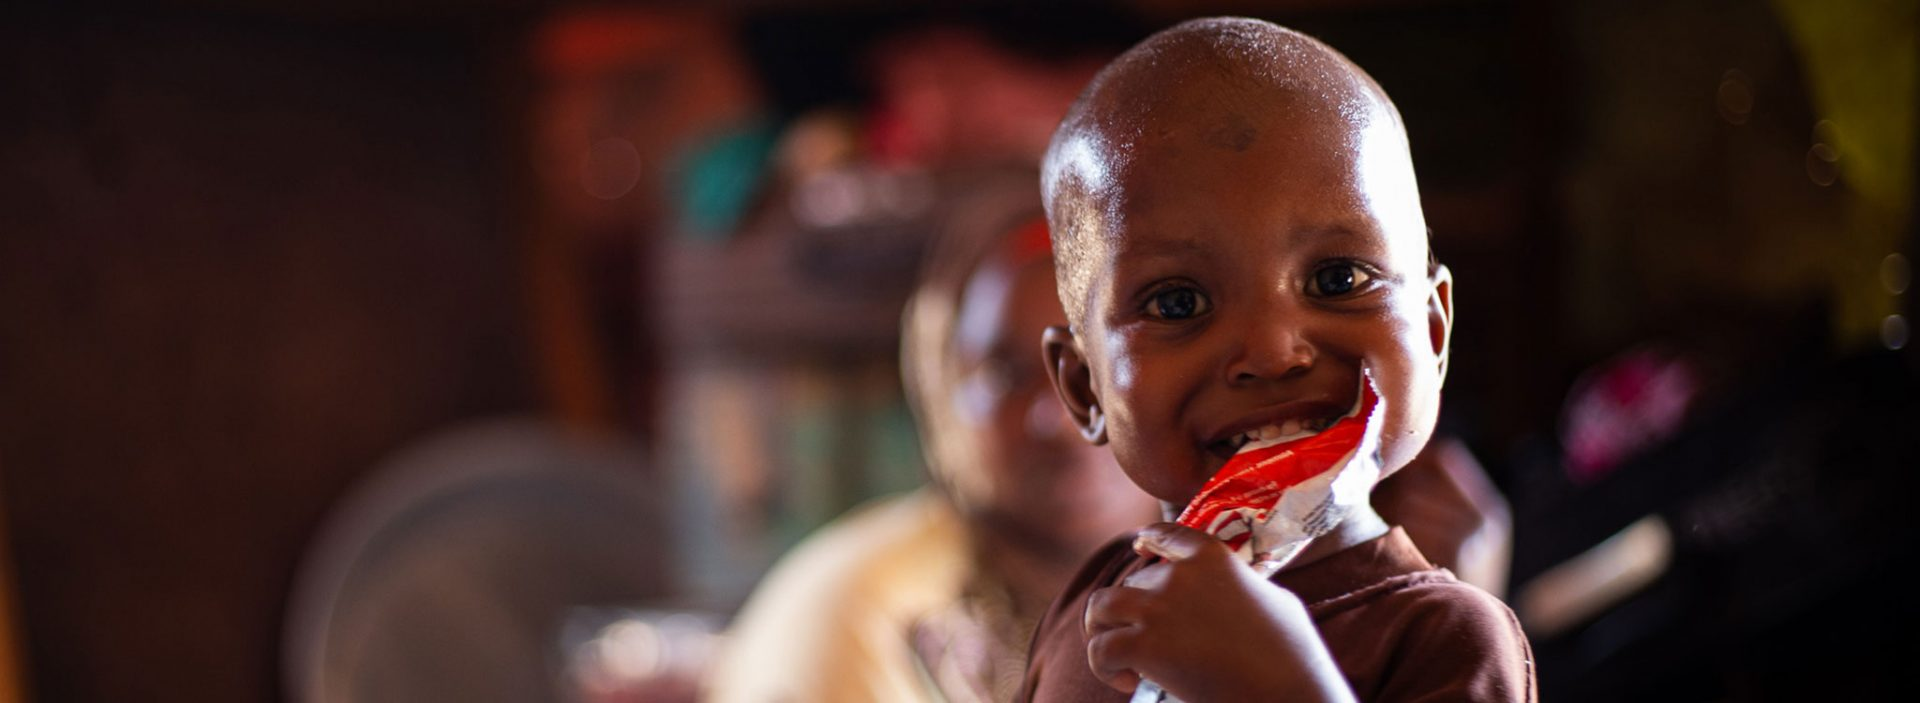 Mohamed from Mogadishu, Somalia, eats ready-to-use therapeutic food at home after receiving treatment for malnutrition from Action Against Hunger.